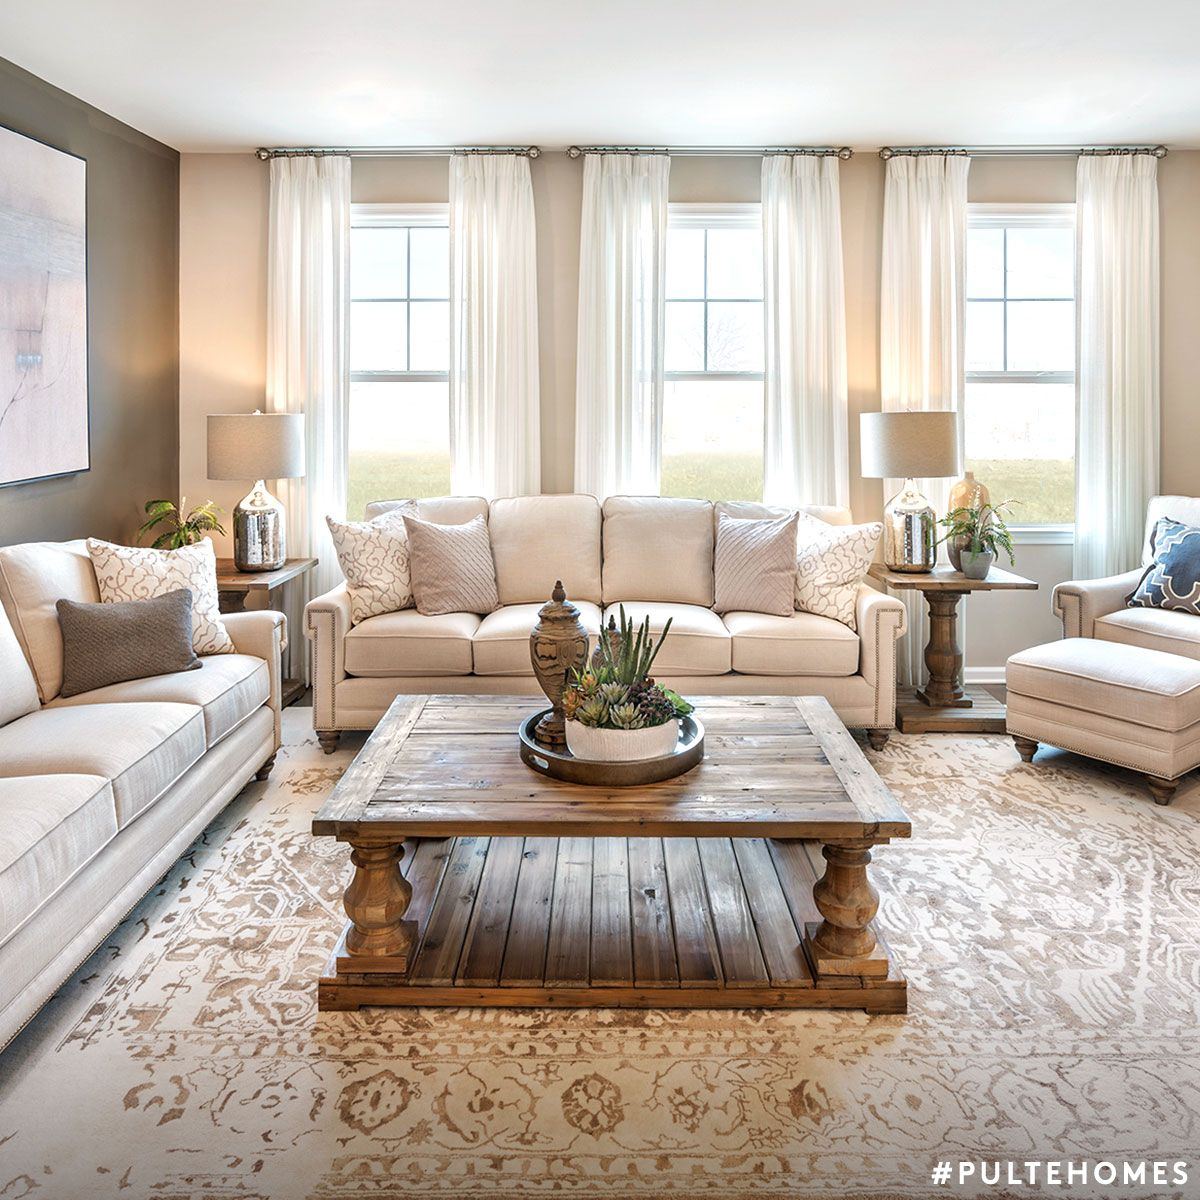 Keep It Simple With An Inviting, Neutral Living Room That